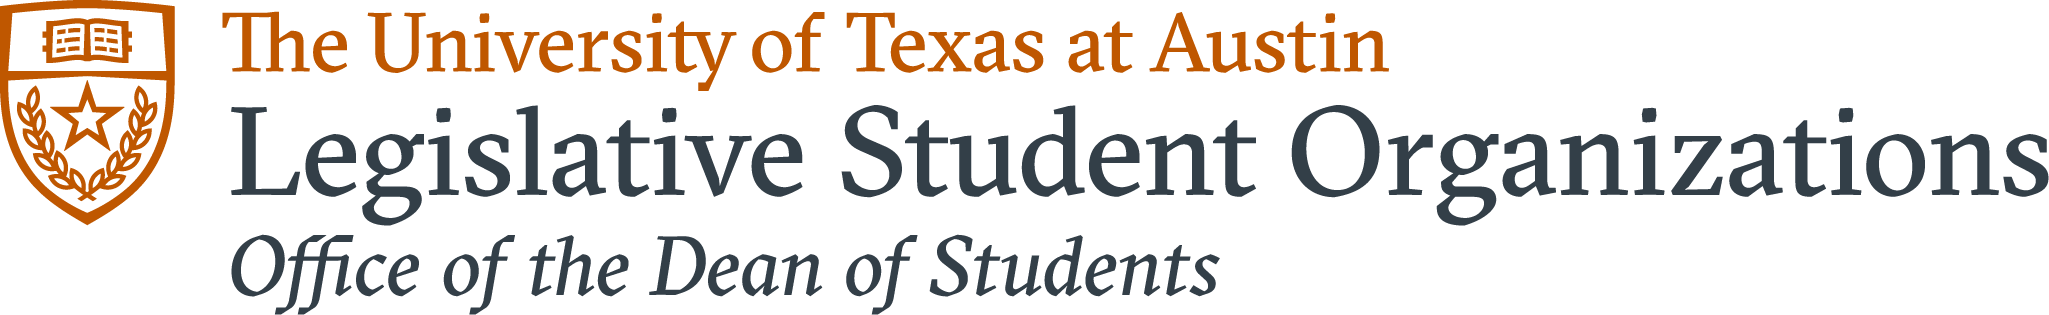 Legislative Student Organizations logo